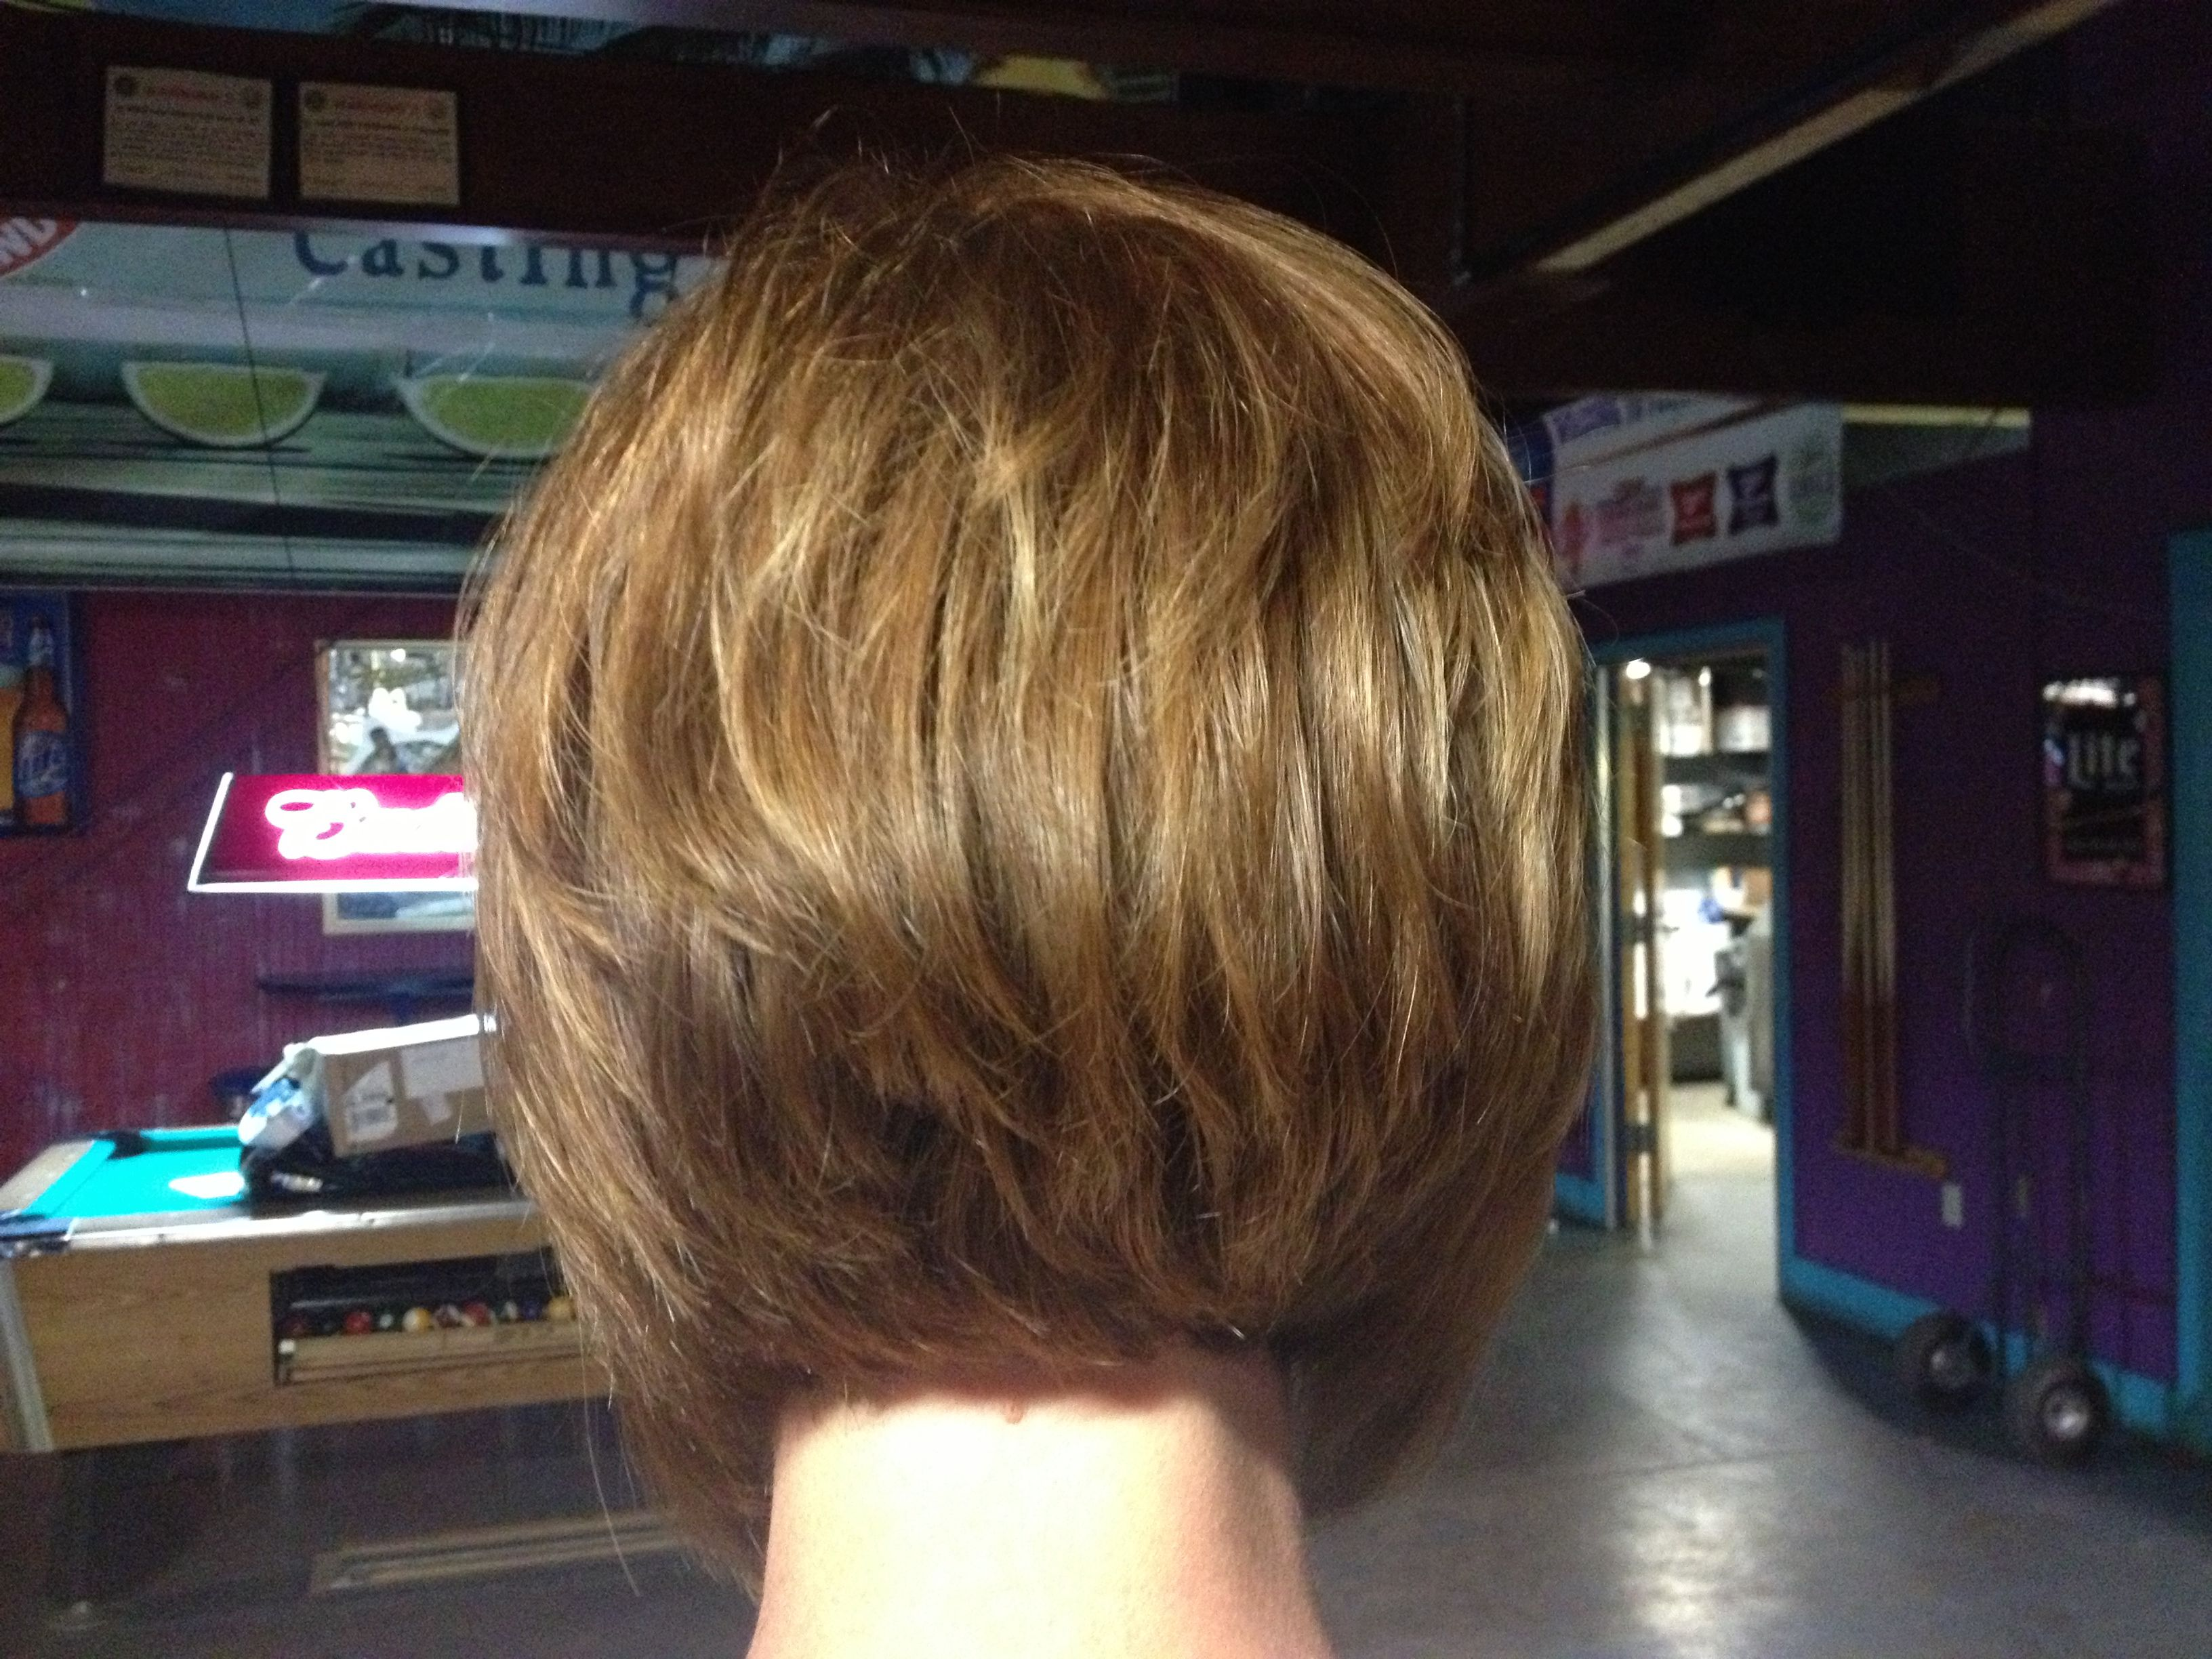 Stacked angled bob | Hair I have done :-) | Pinterest ...